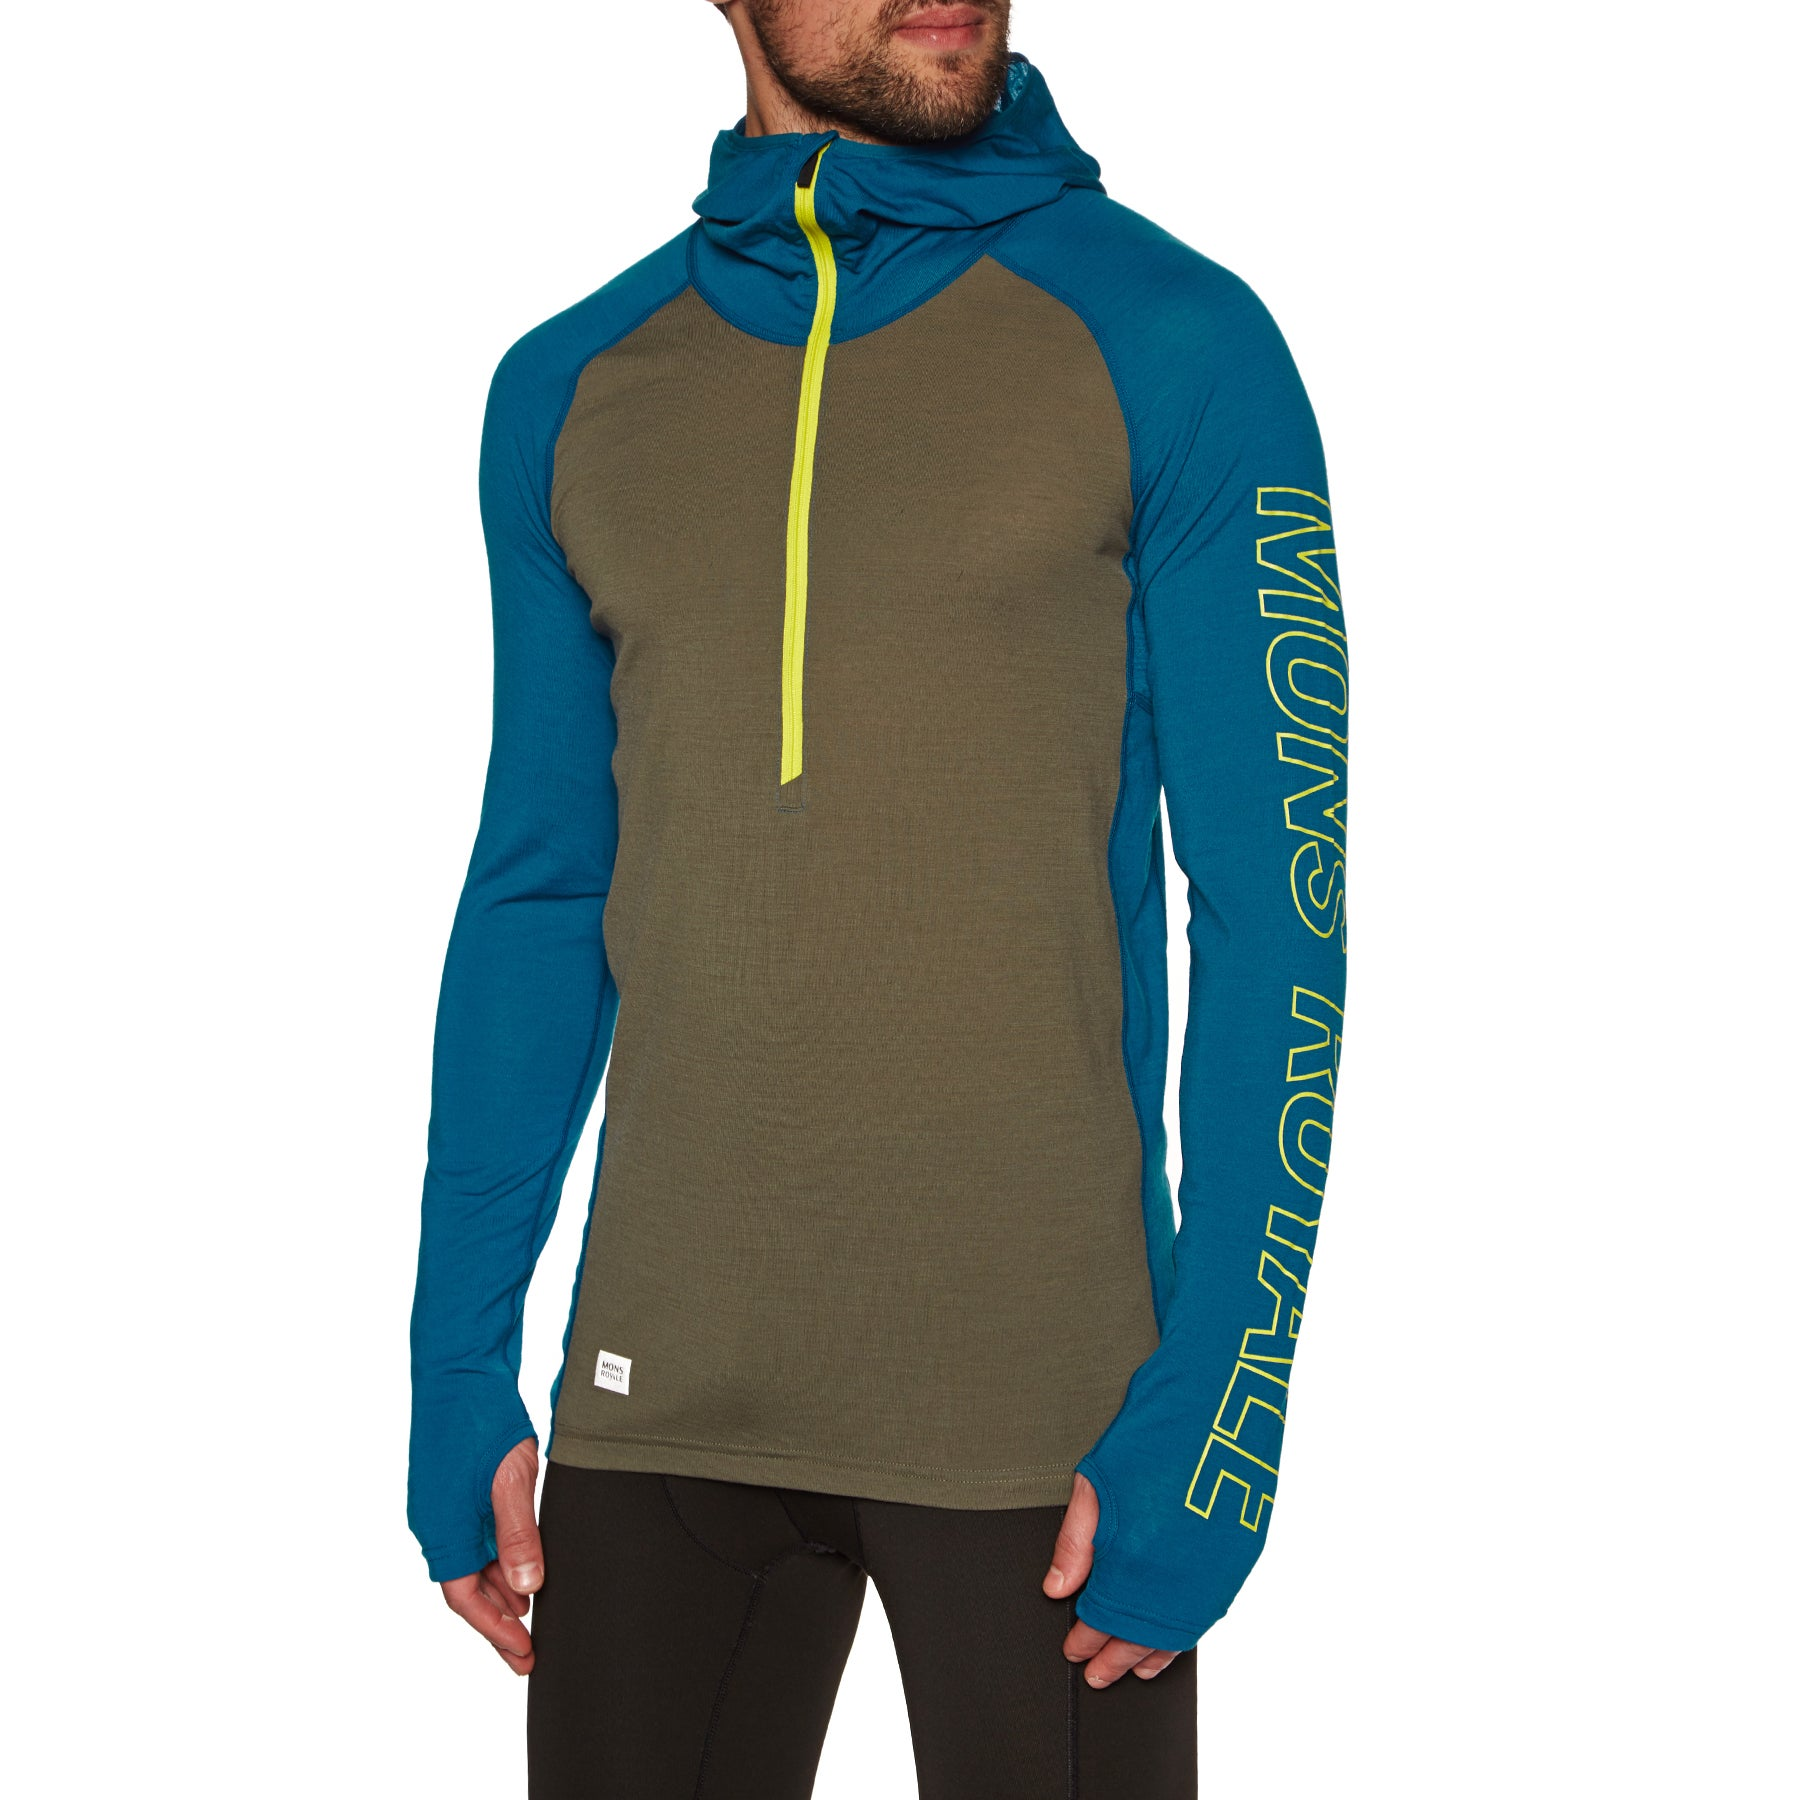 Mons Royale Temple Tech Hooded Base Layer Top - Oily Blue Olive